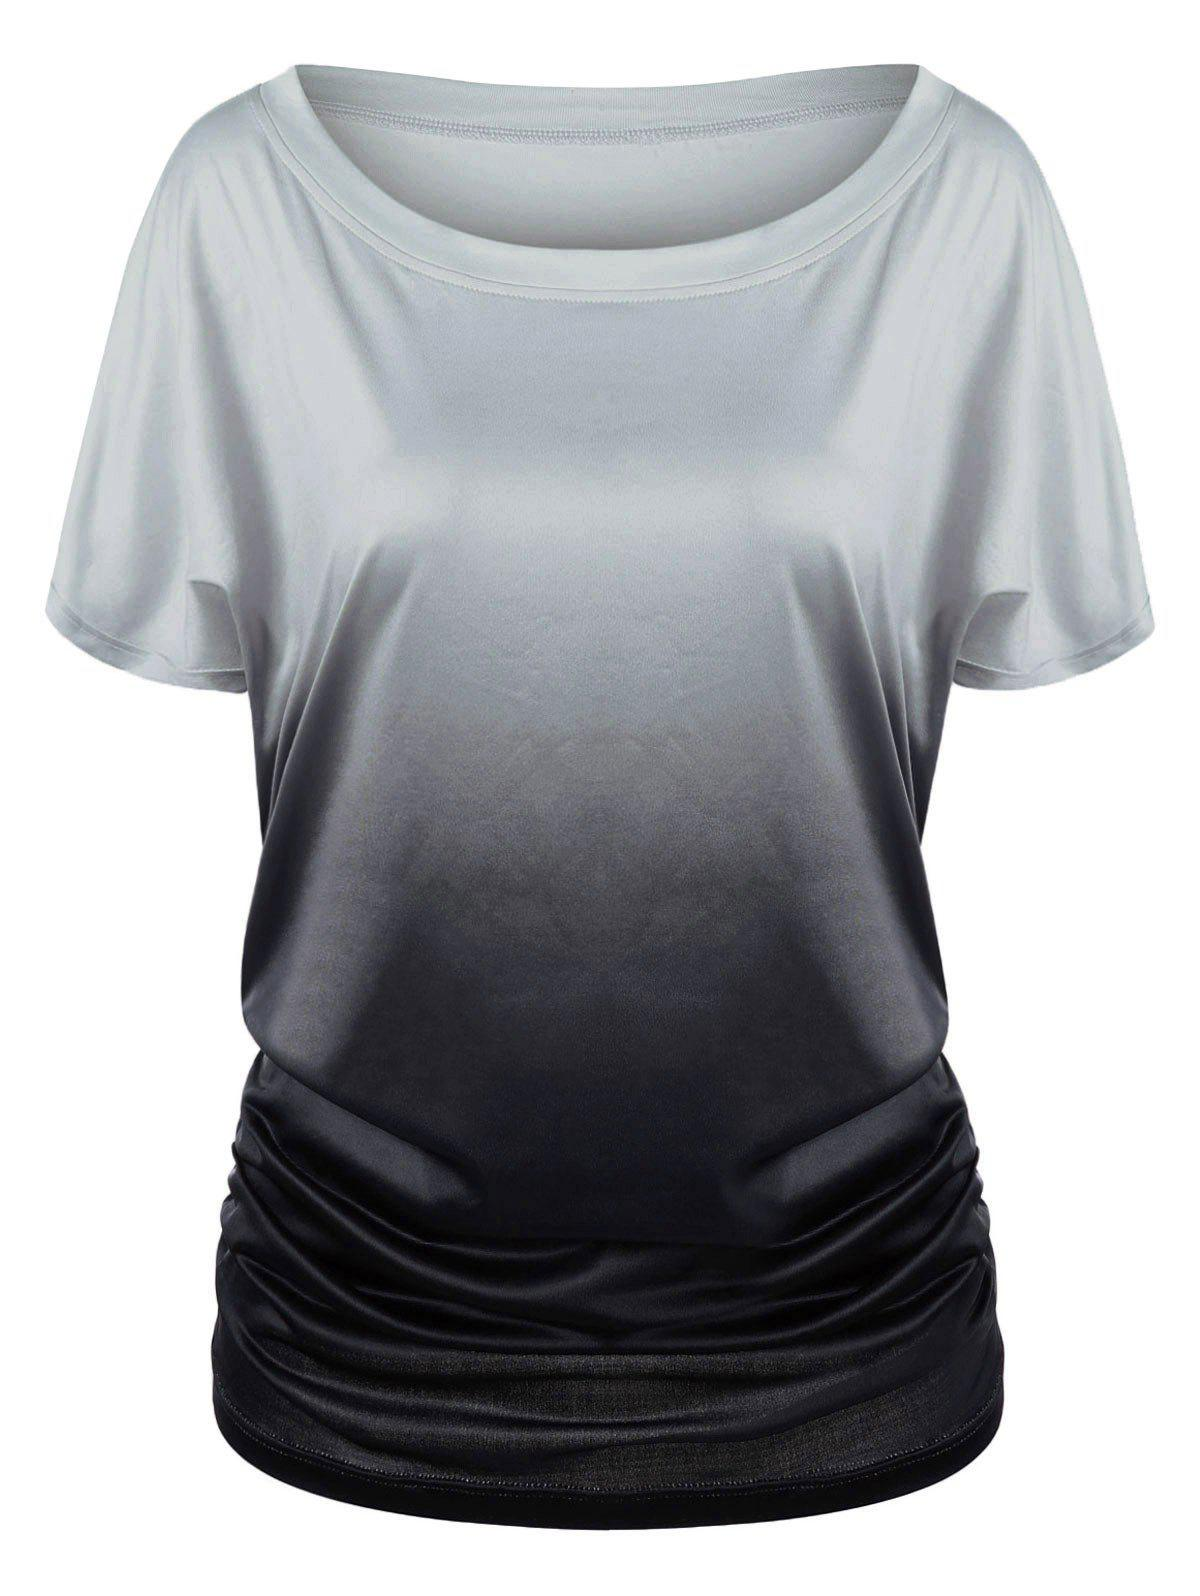 Ombre Shirred Side Plus Size Long T-ShirtWOMEN<br><br>Size: 2XL; Color: BLACK AND GREY; Material: Polyester; Shirt Length: Long; Sleeve Length: Short; Collar: Scoop Neck; Style: Casual; Season: Summer; Pattern Type: Others; Weight: 0.3900kg; Package Contents: 1 x T-Shirt;